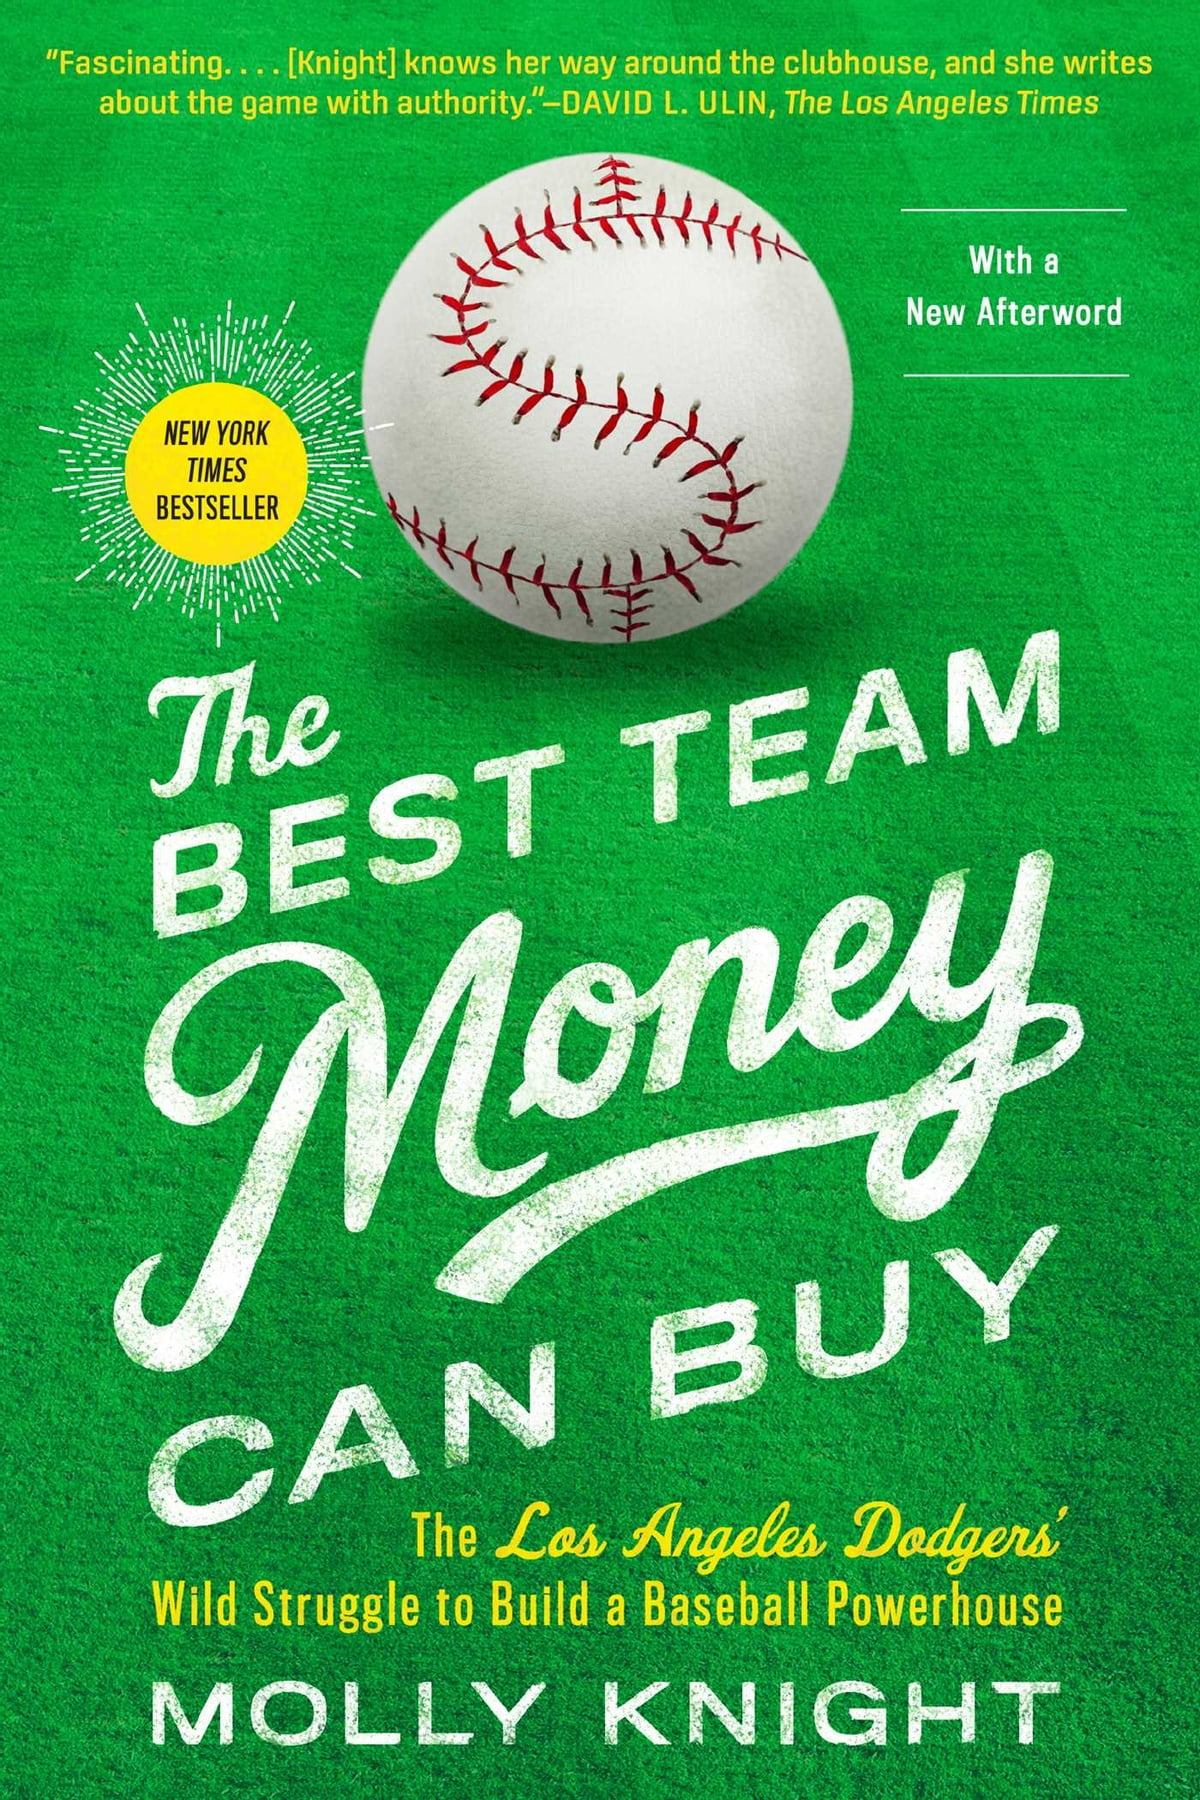 The Best Team Money Can Buy Ebook By Molly Knight  9781476776316  Kobo